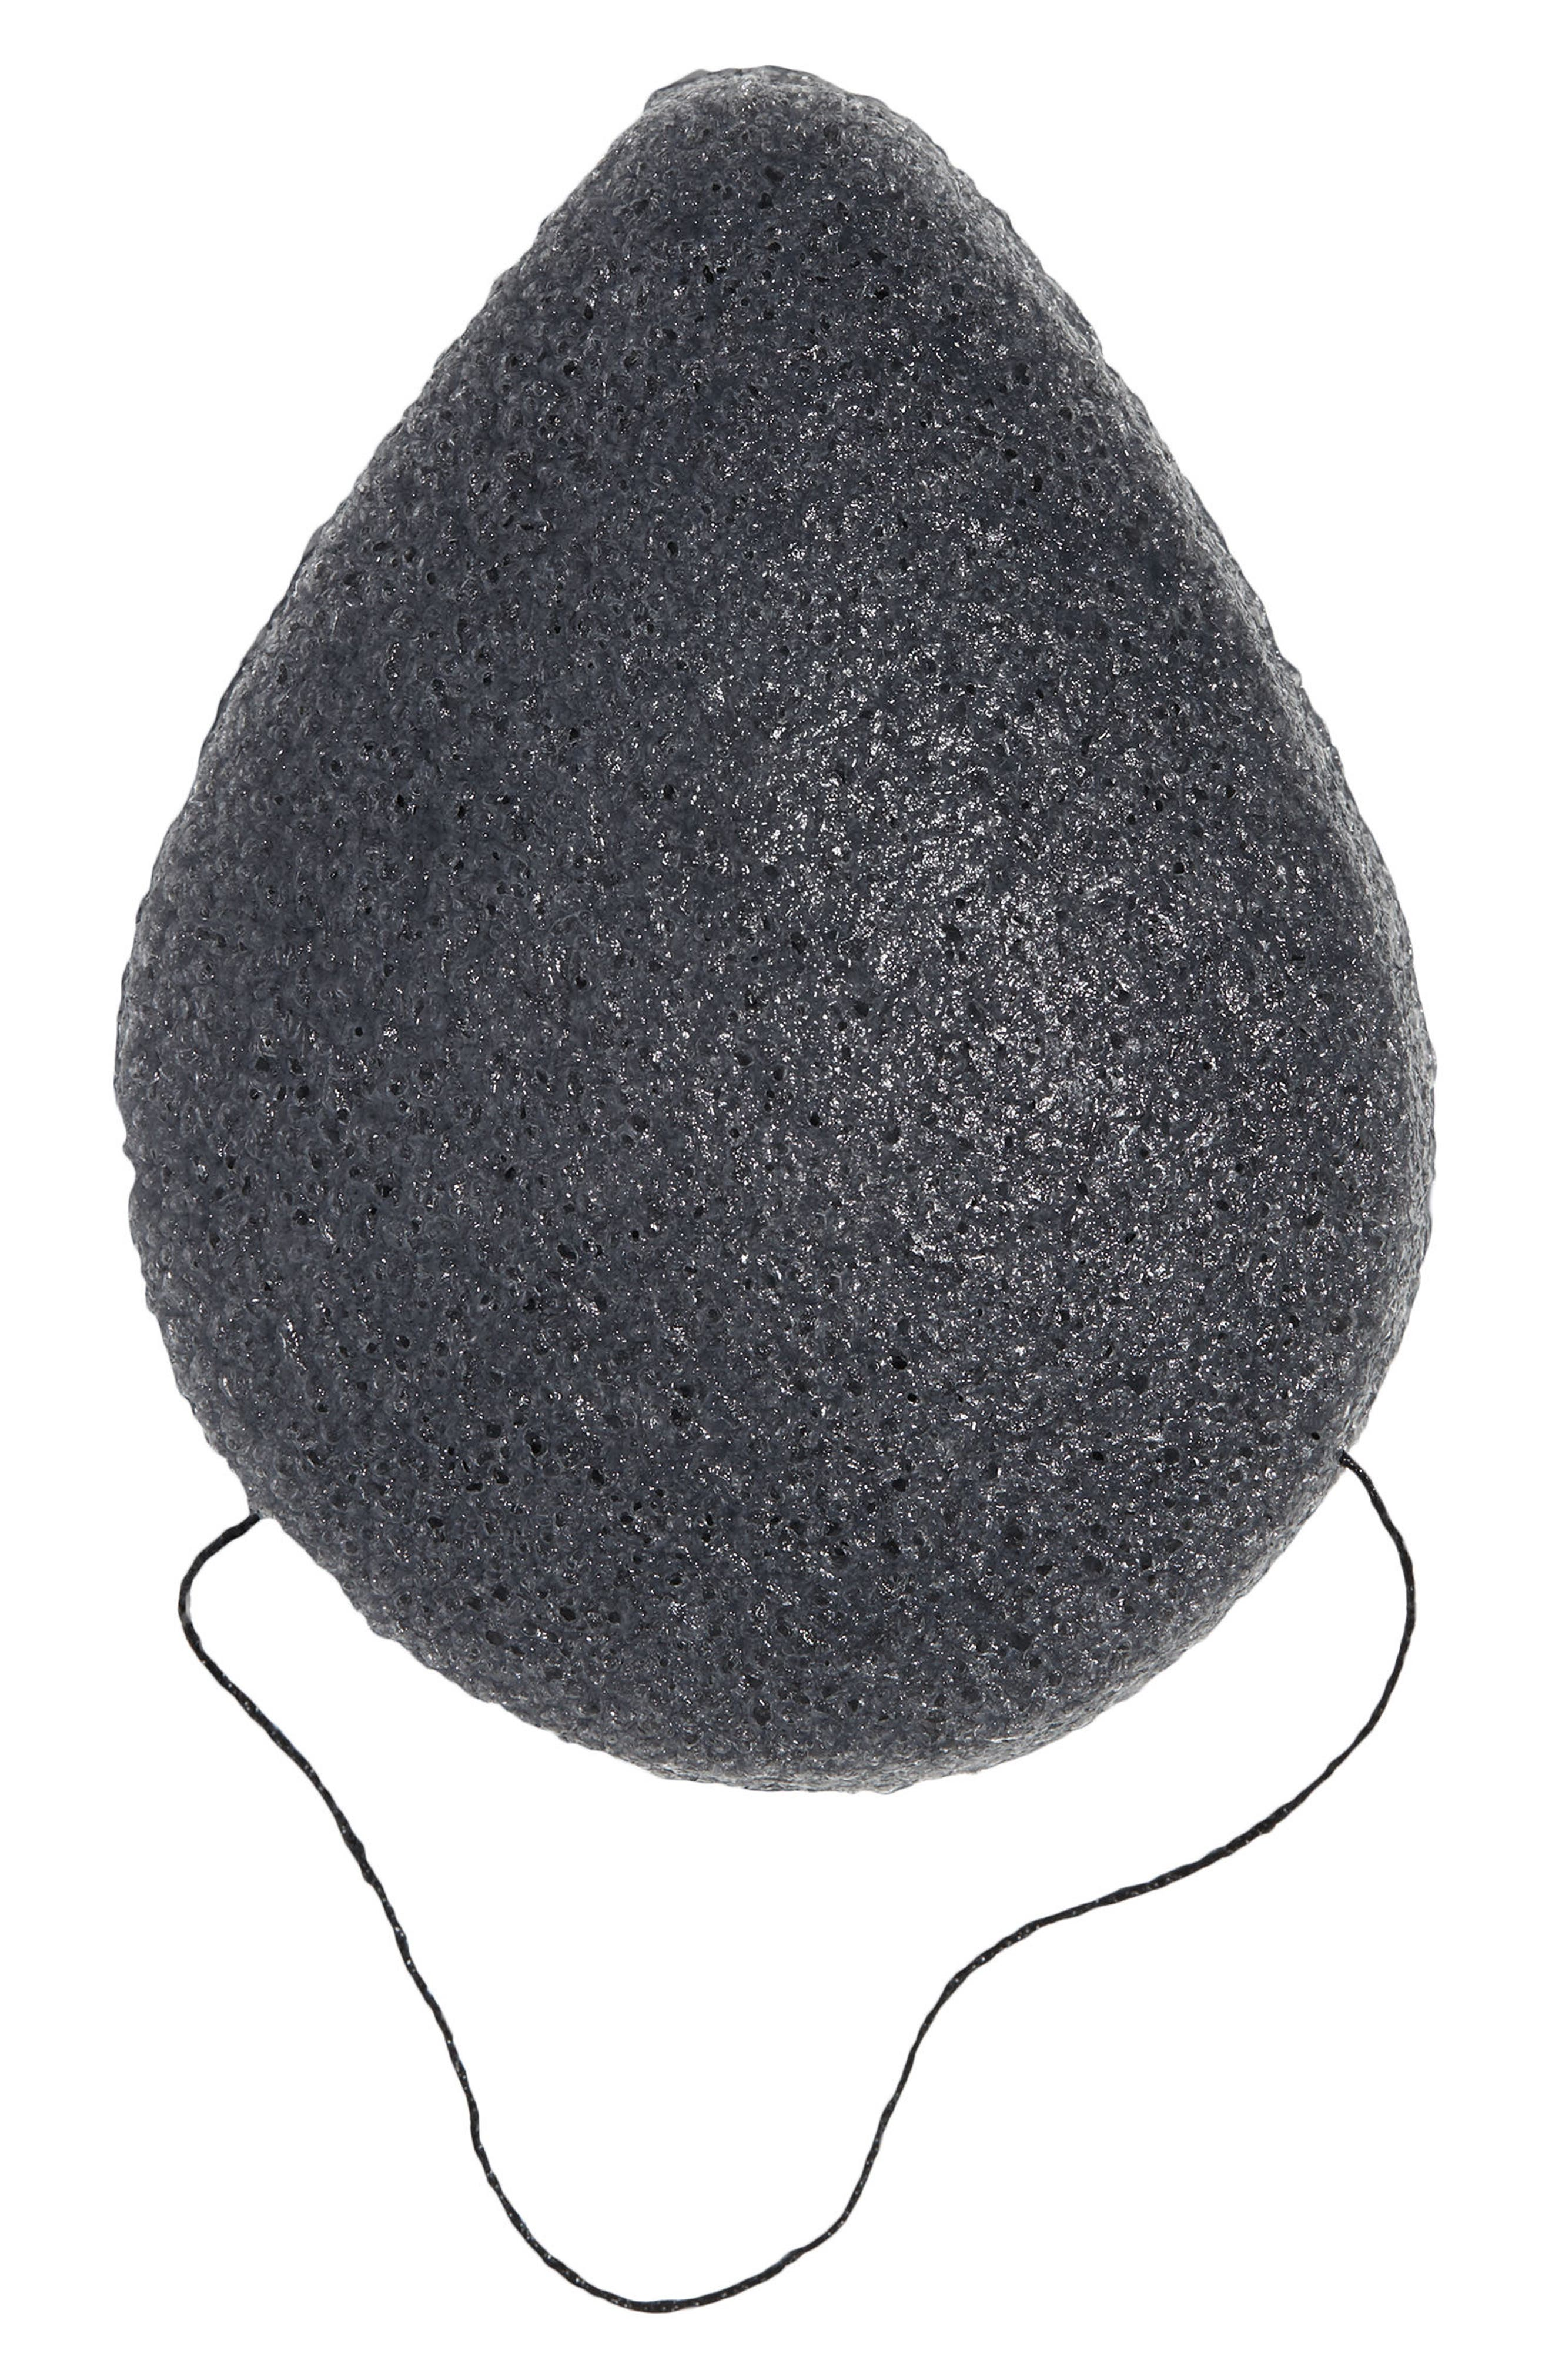 Julep Konjac Cleansing Sponge,                         Main,                         color, No Color